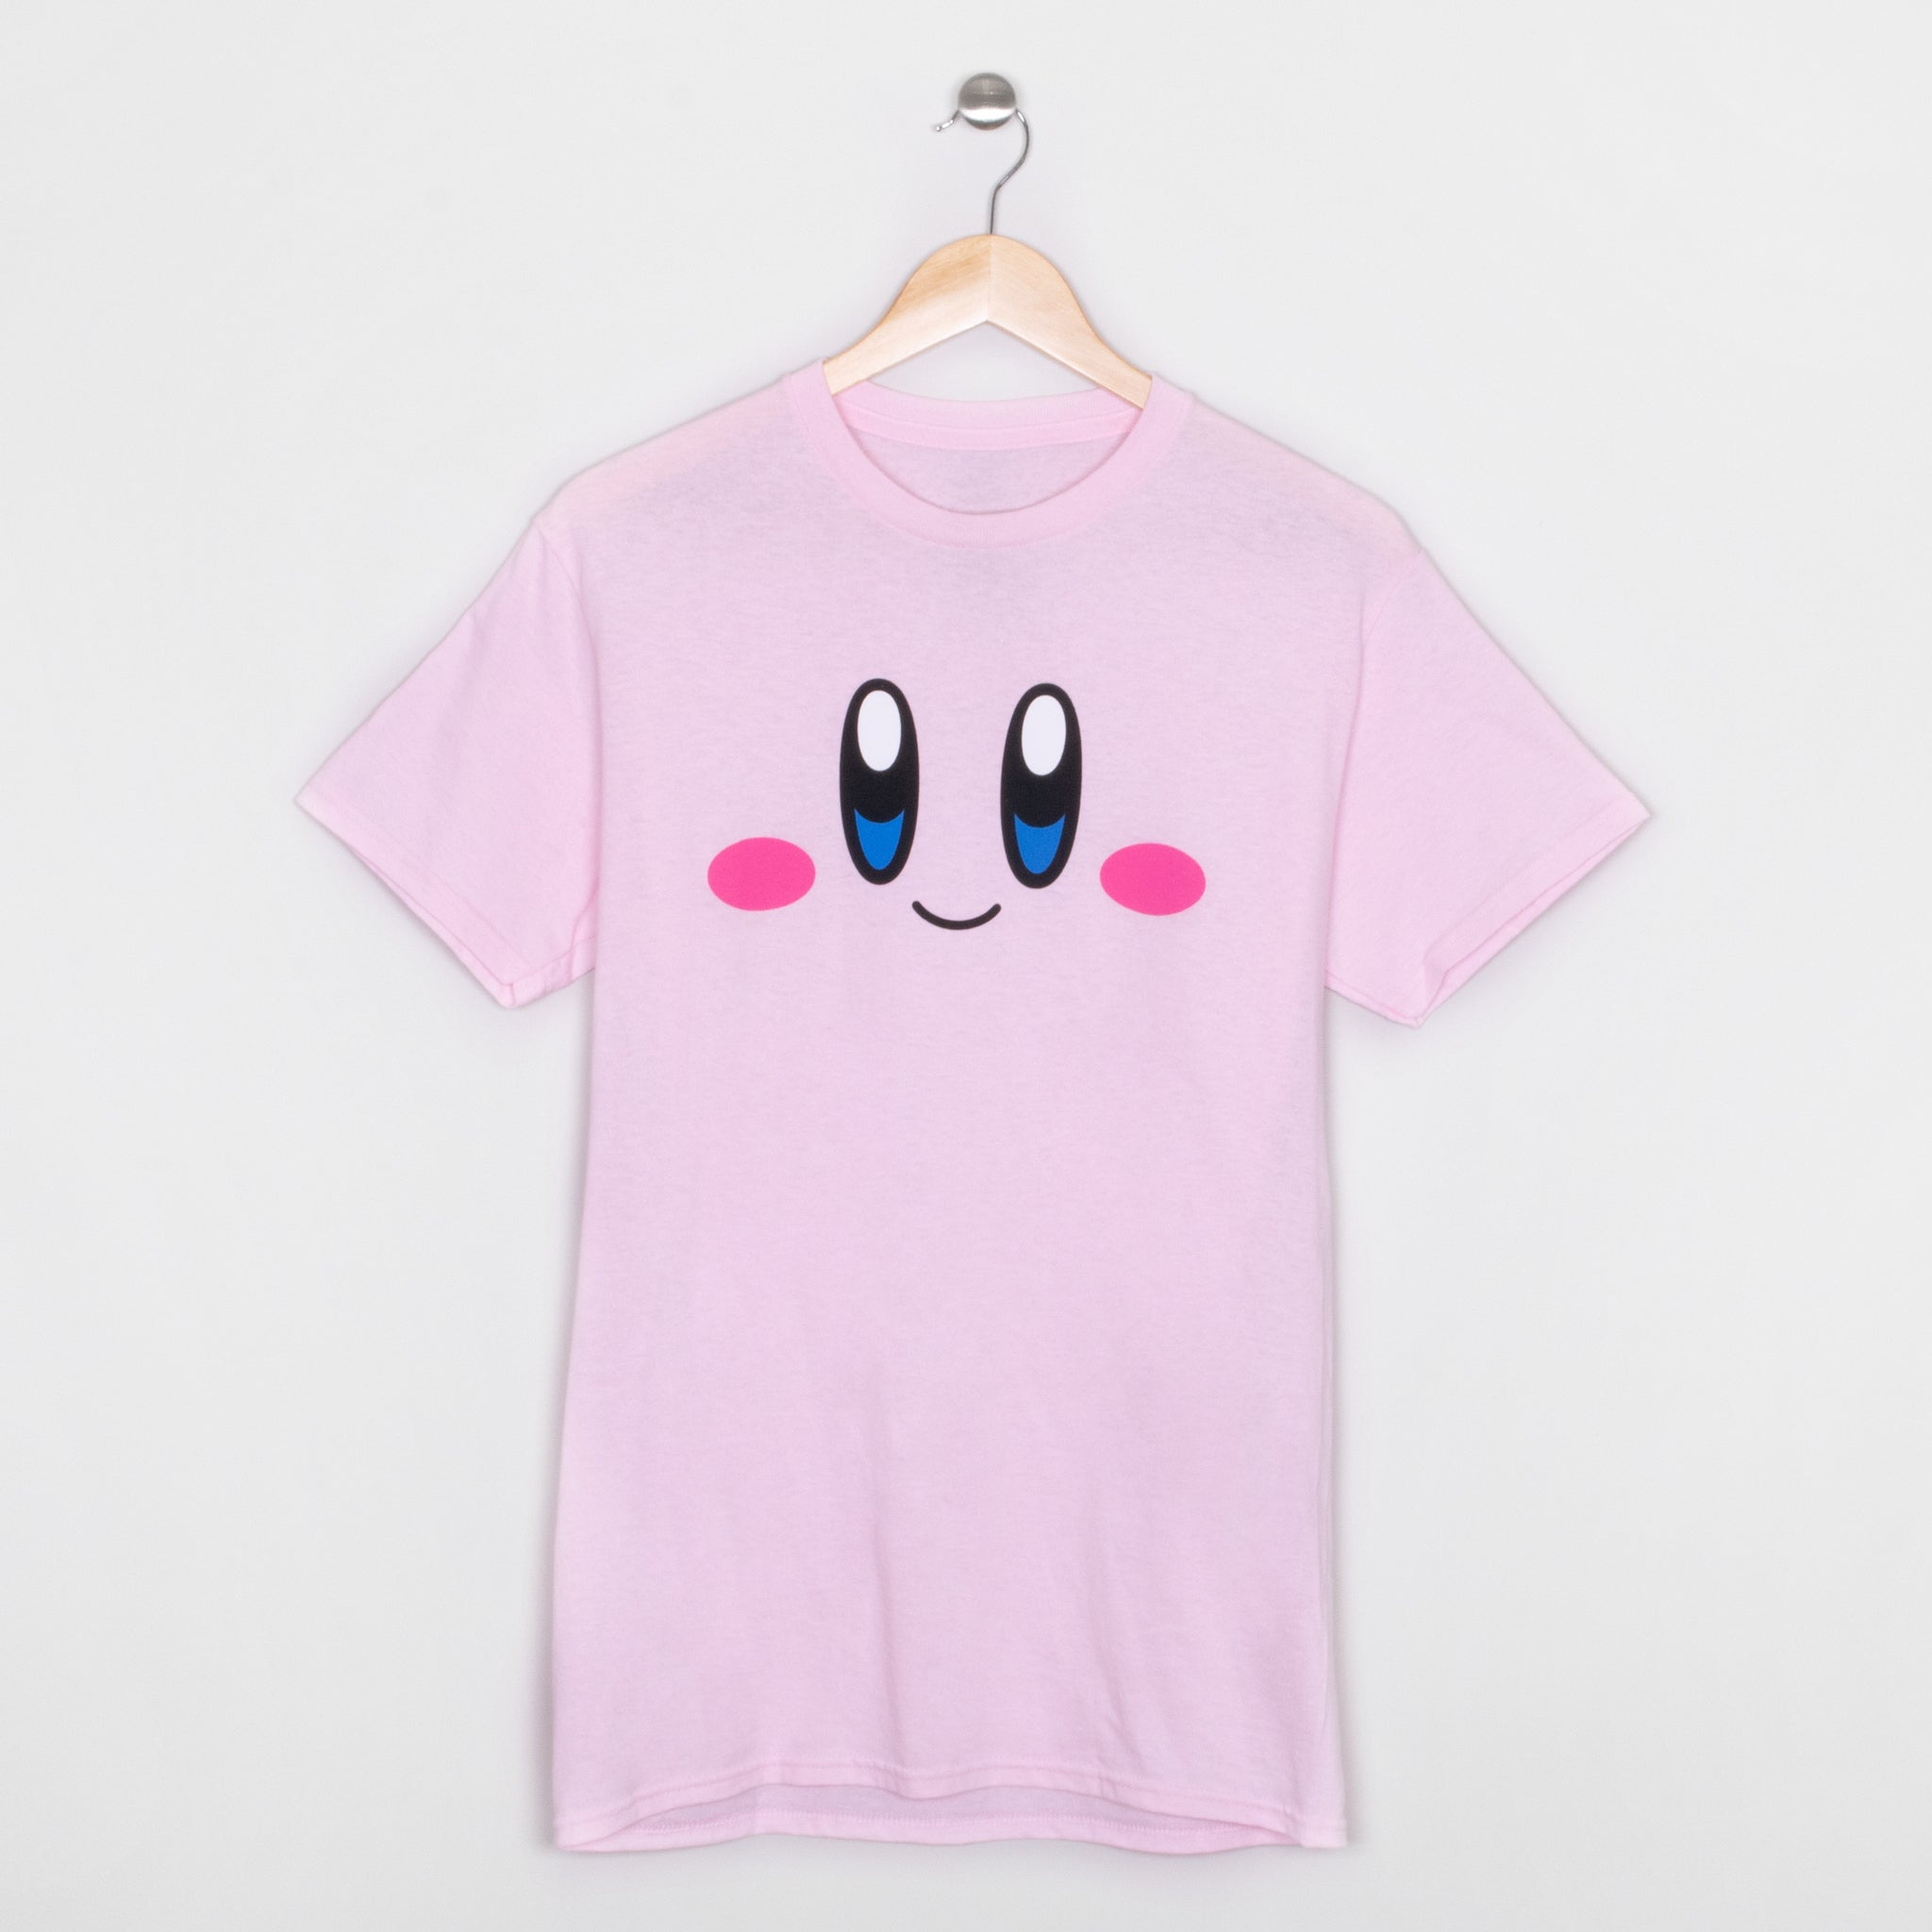 kirby pink face nintendo video games gaming t-shirt apparel shirt culturefly